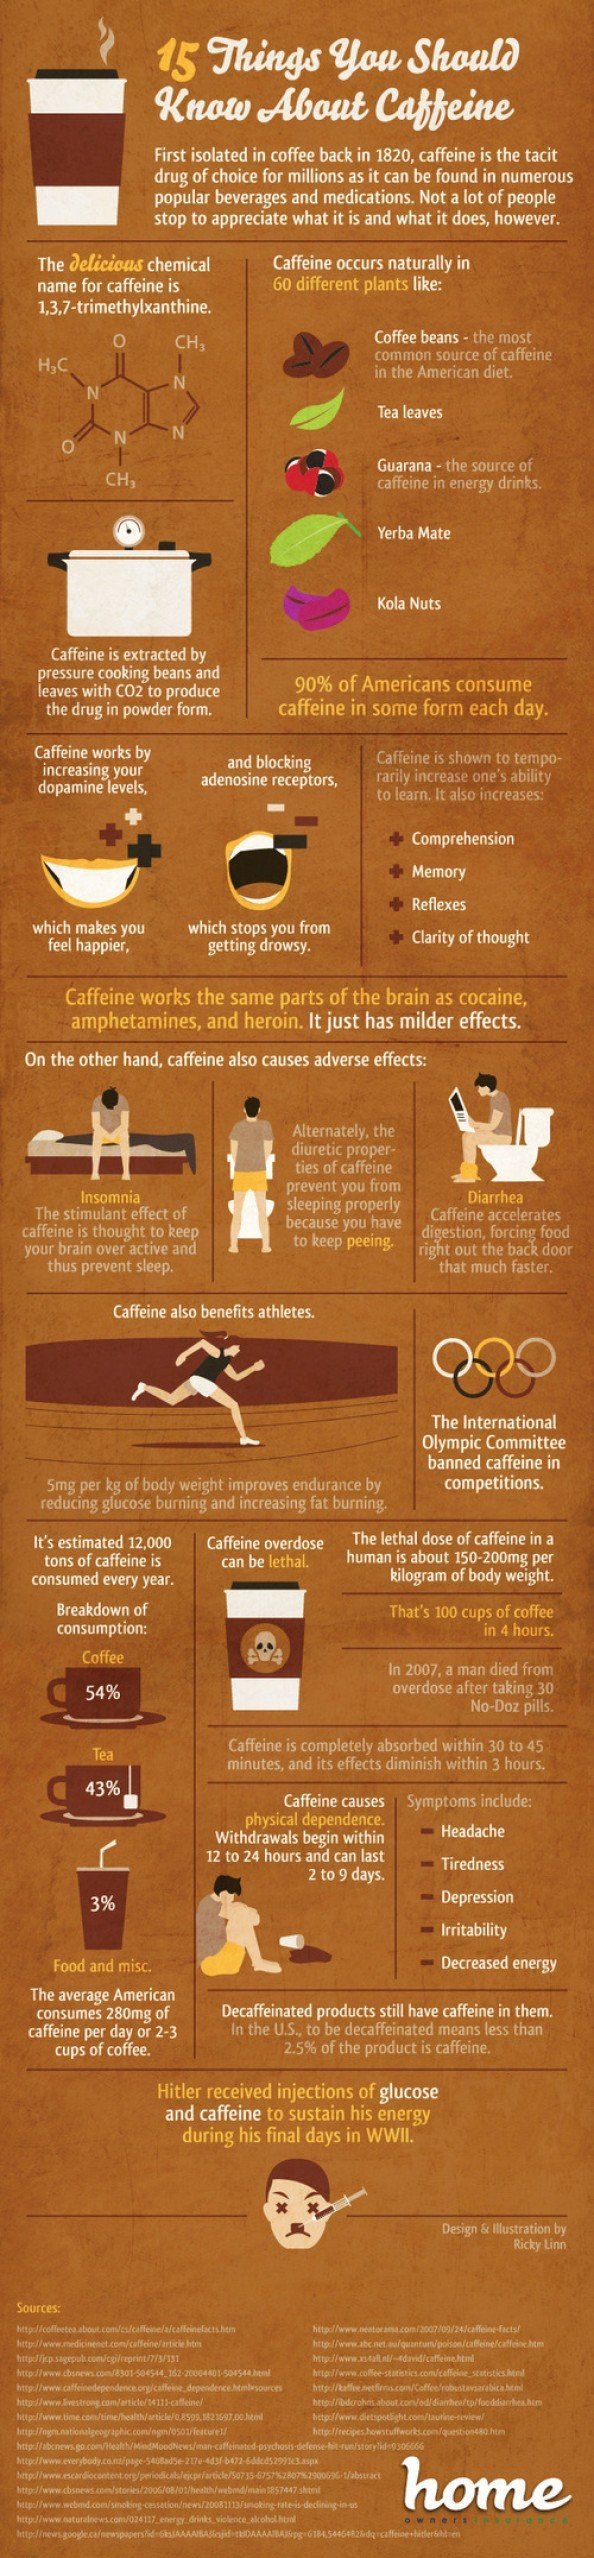 caffeine effect and facts #infographic